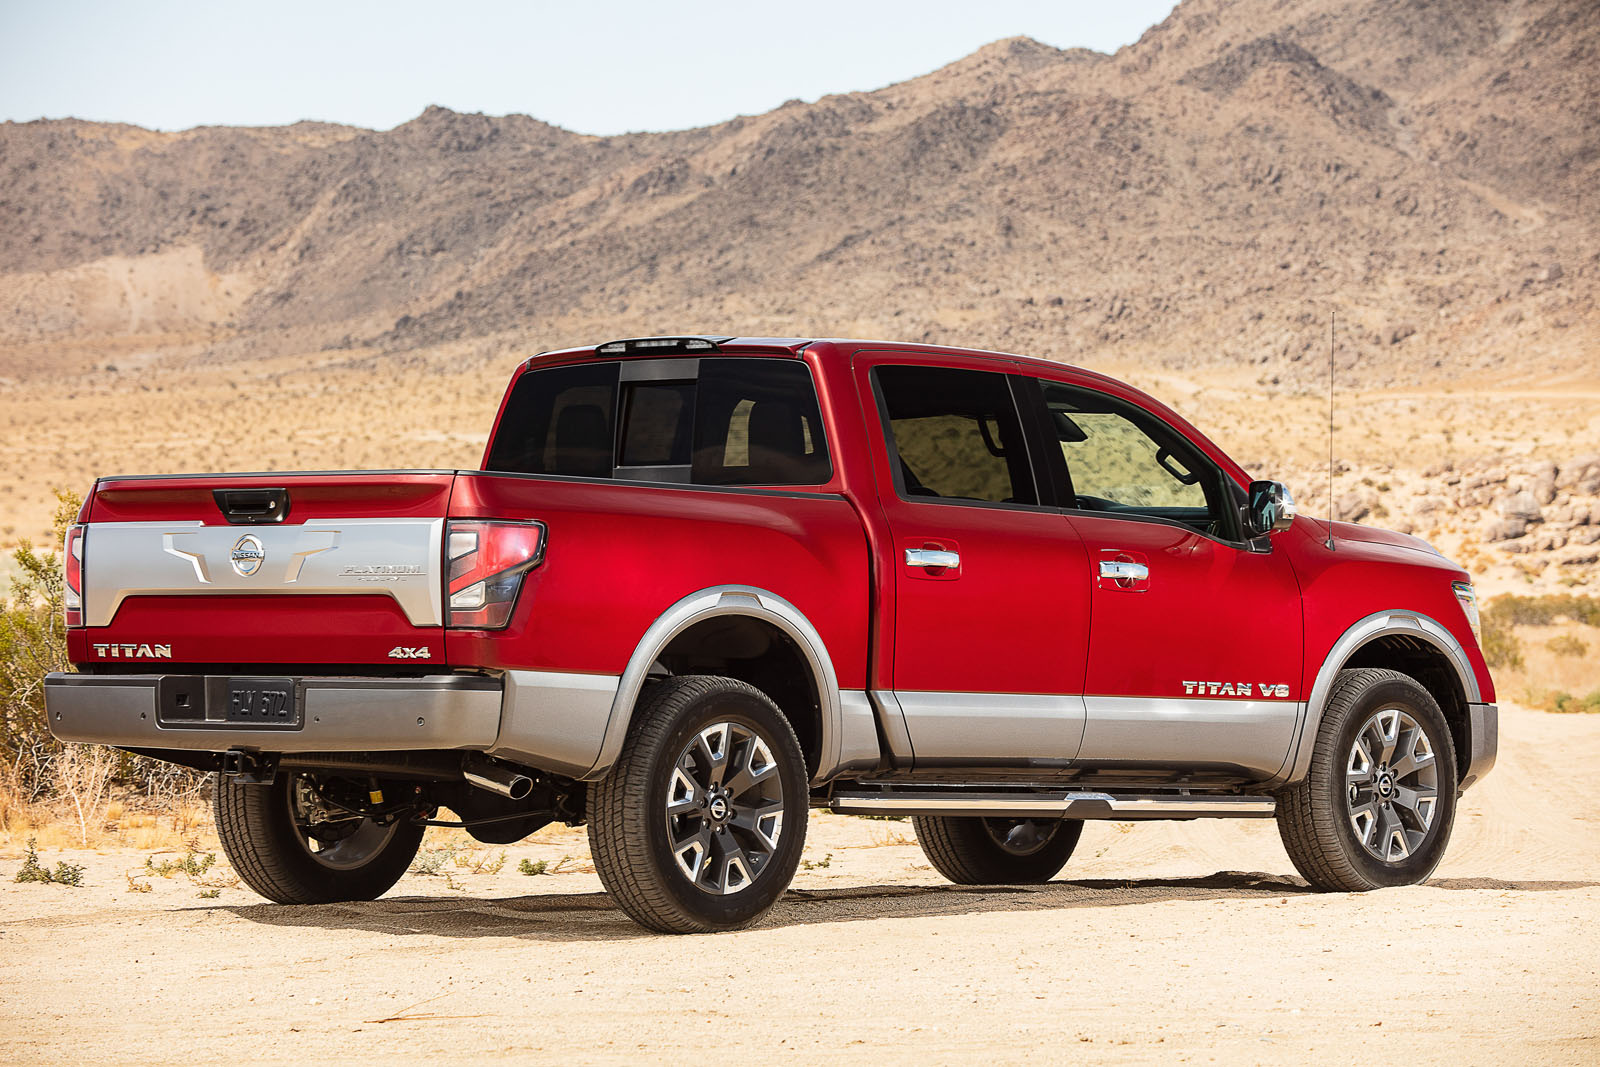 2020 nissan titan redesign updates looks and adds features